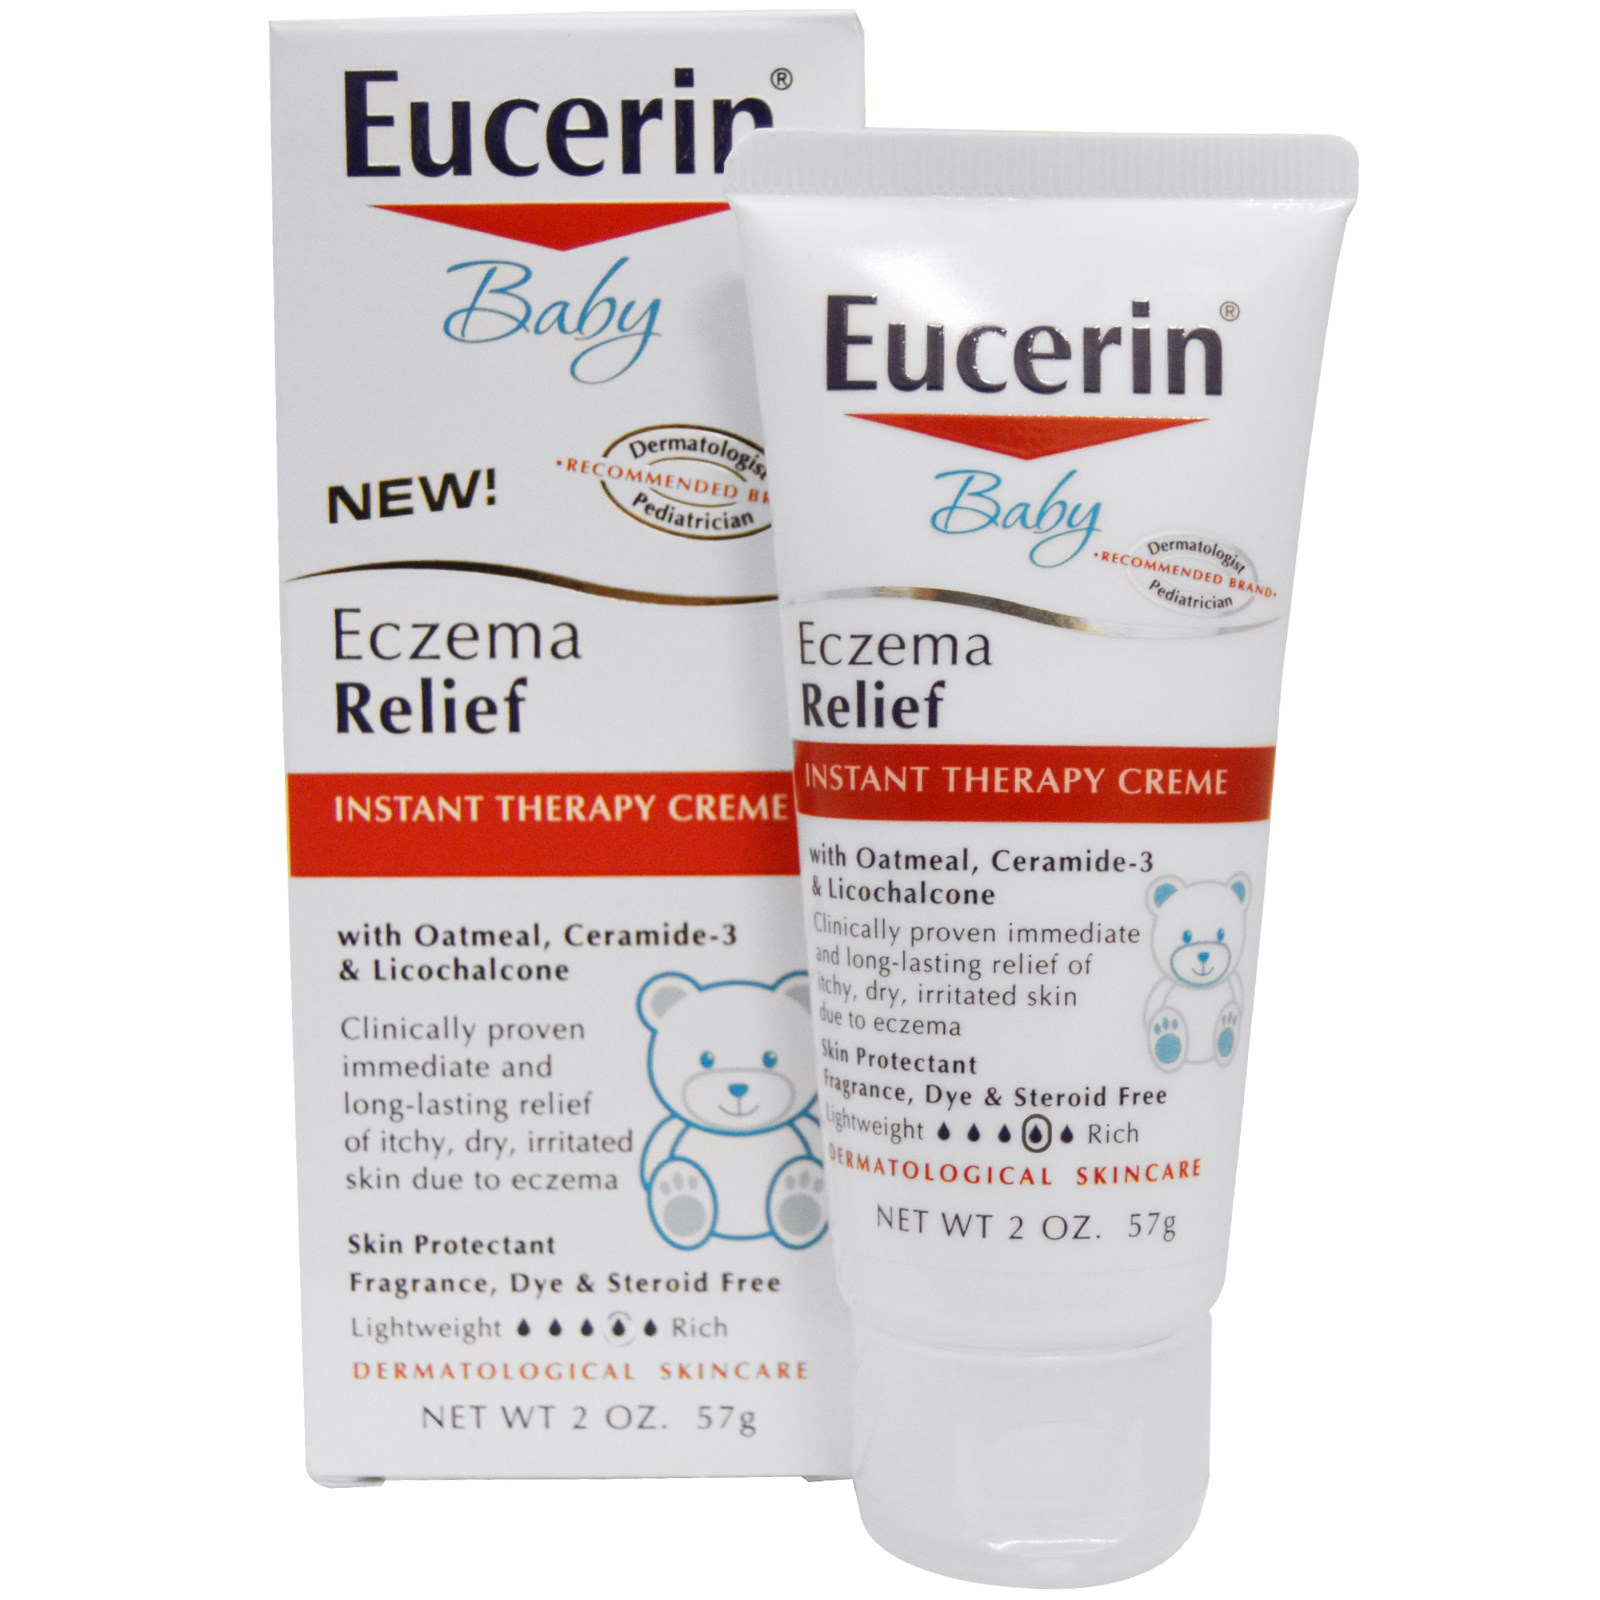 Imagine all of the things your family could enjoy if eczema flare ups were  out of the picture  That s where Eucerin comes in  Eucerin wants to equip  you and. New Age Mama  Eucerin s Eczema Relief Challenge